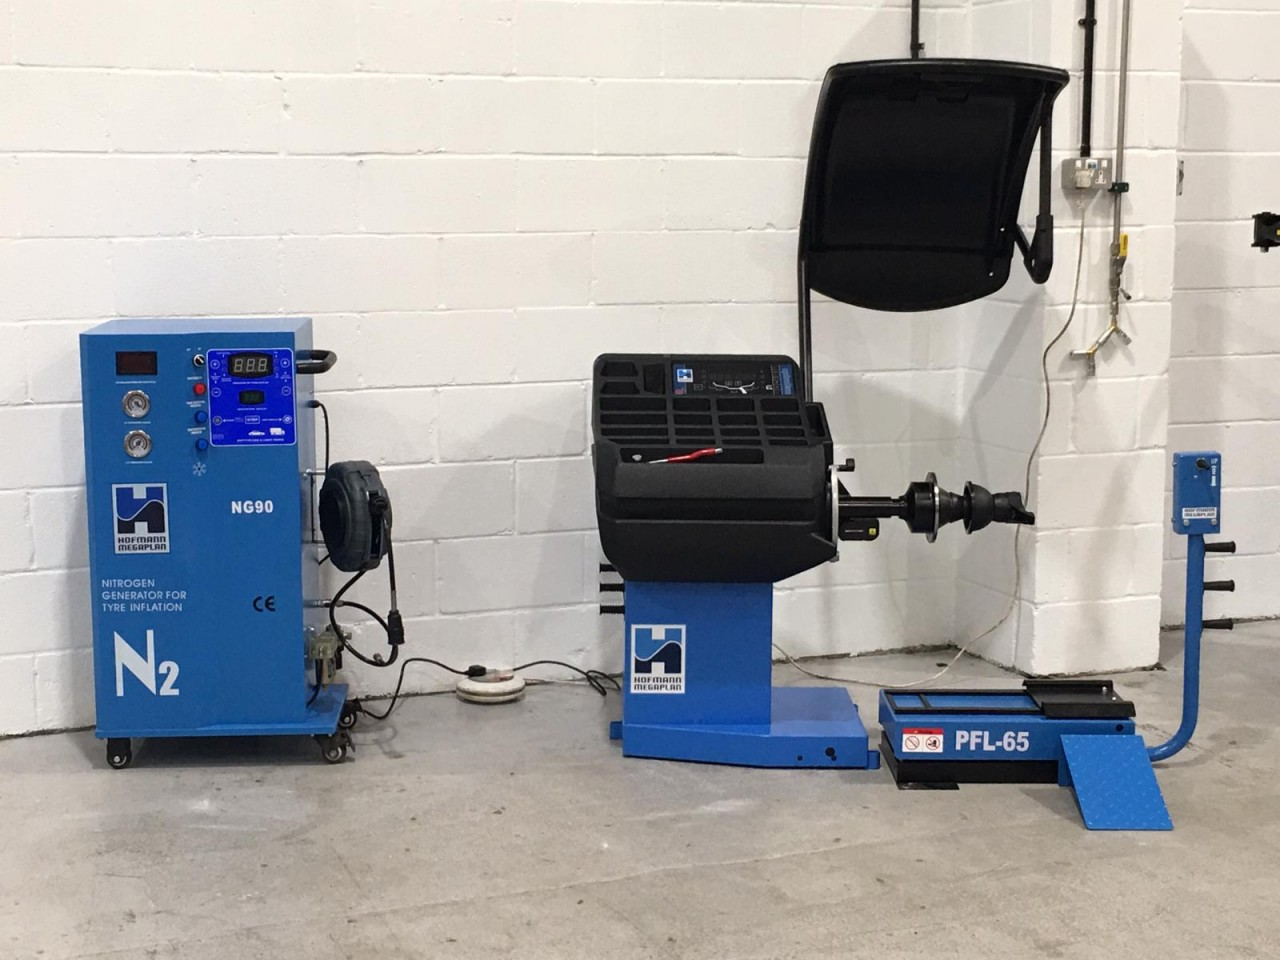 Wheel Balancer and Nitro Inflation machines were also included in this premium garage equipment line up